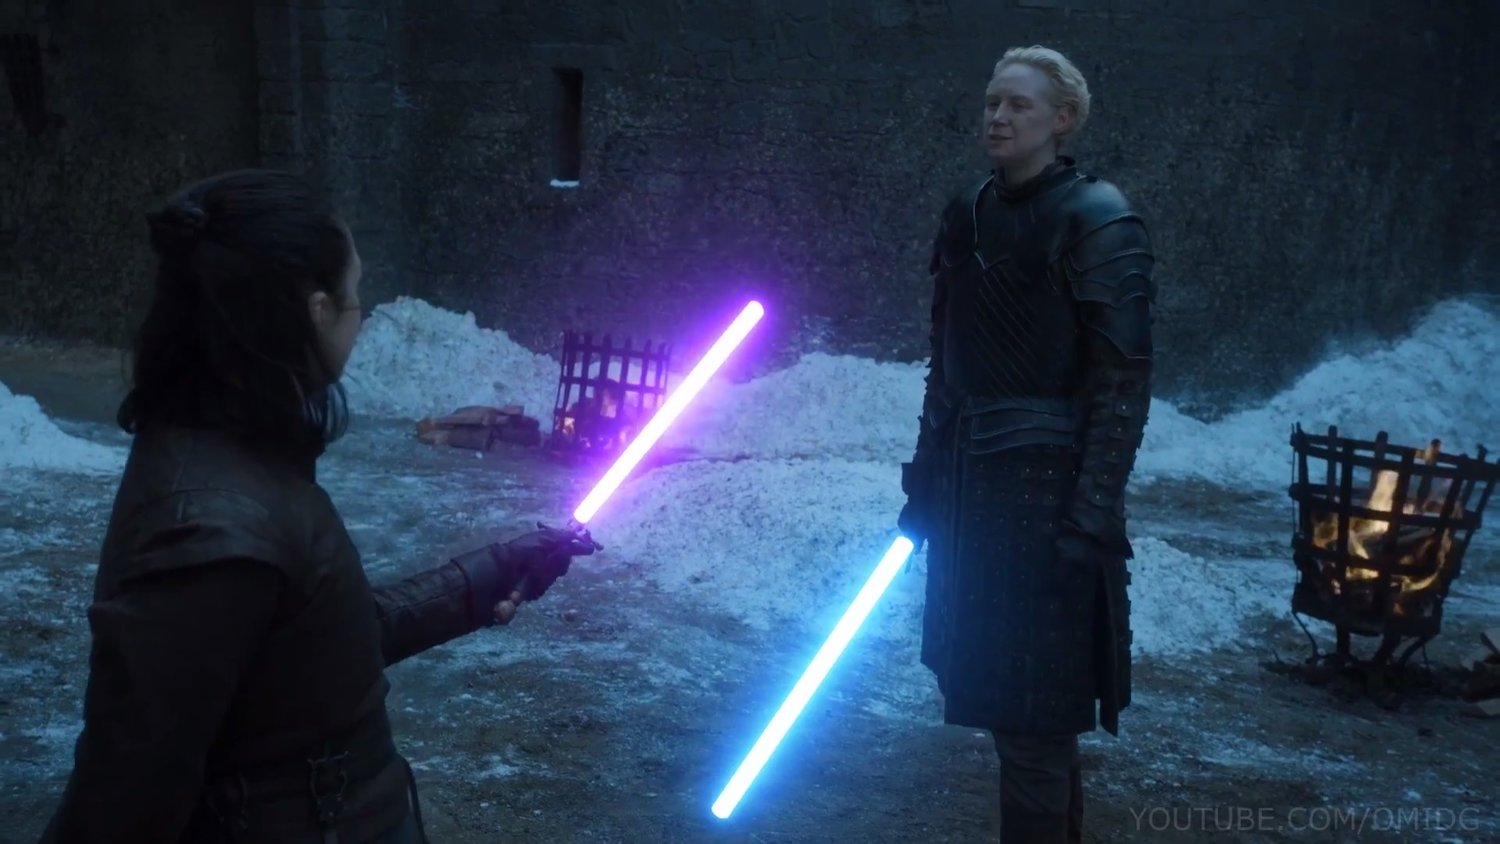 Arya and Brienne duel with lightsabers in GOT fan Edit